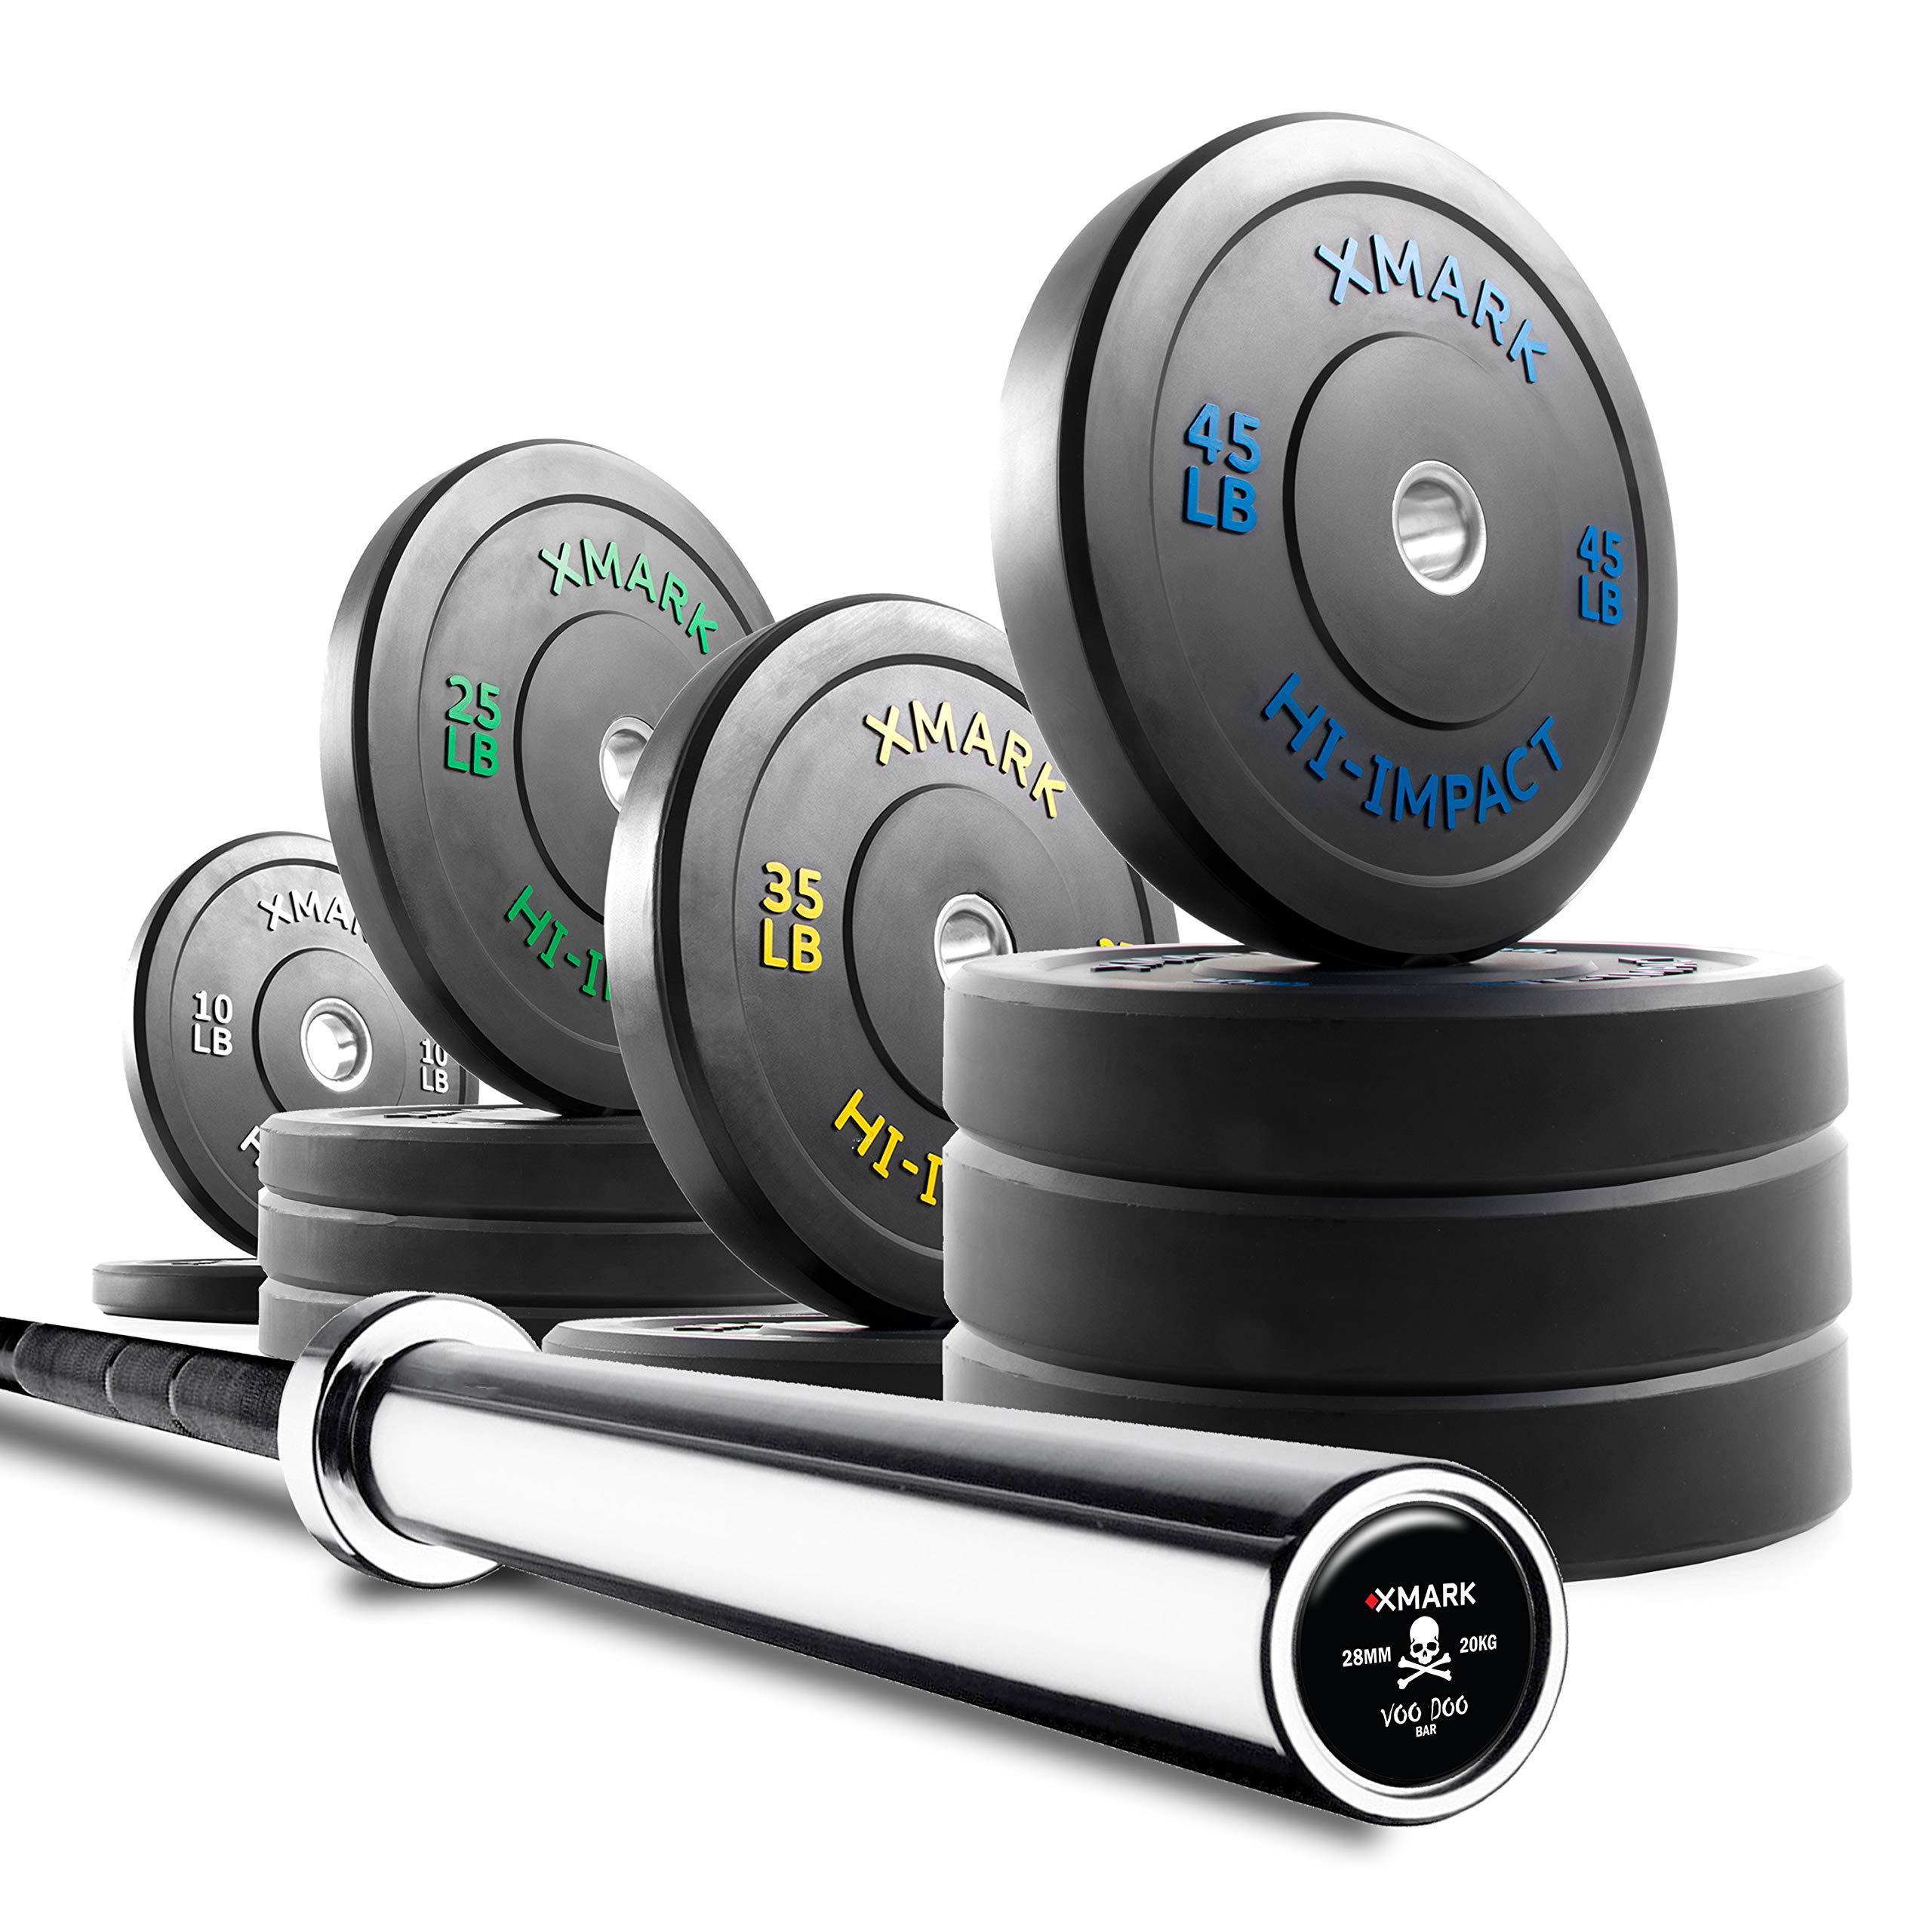 XMark Voodoo Commercial 7' Olympic Bar Plus 370 lbs. of XMark HI-Impact Low Bounce Virgin Rubber Olympic Bumper Plates